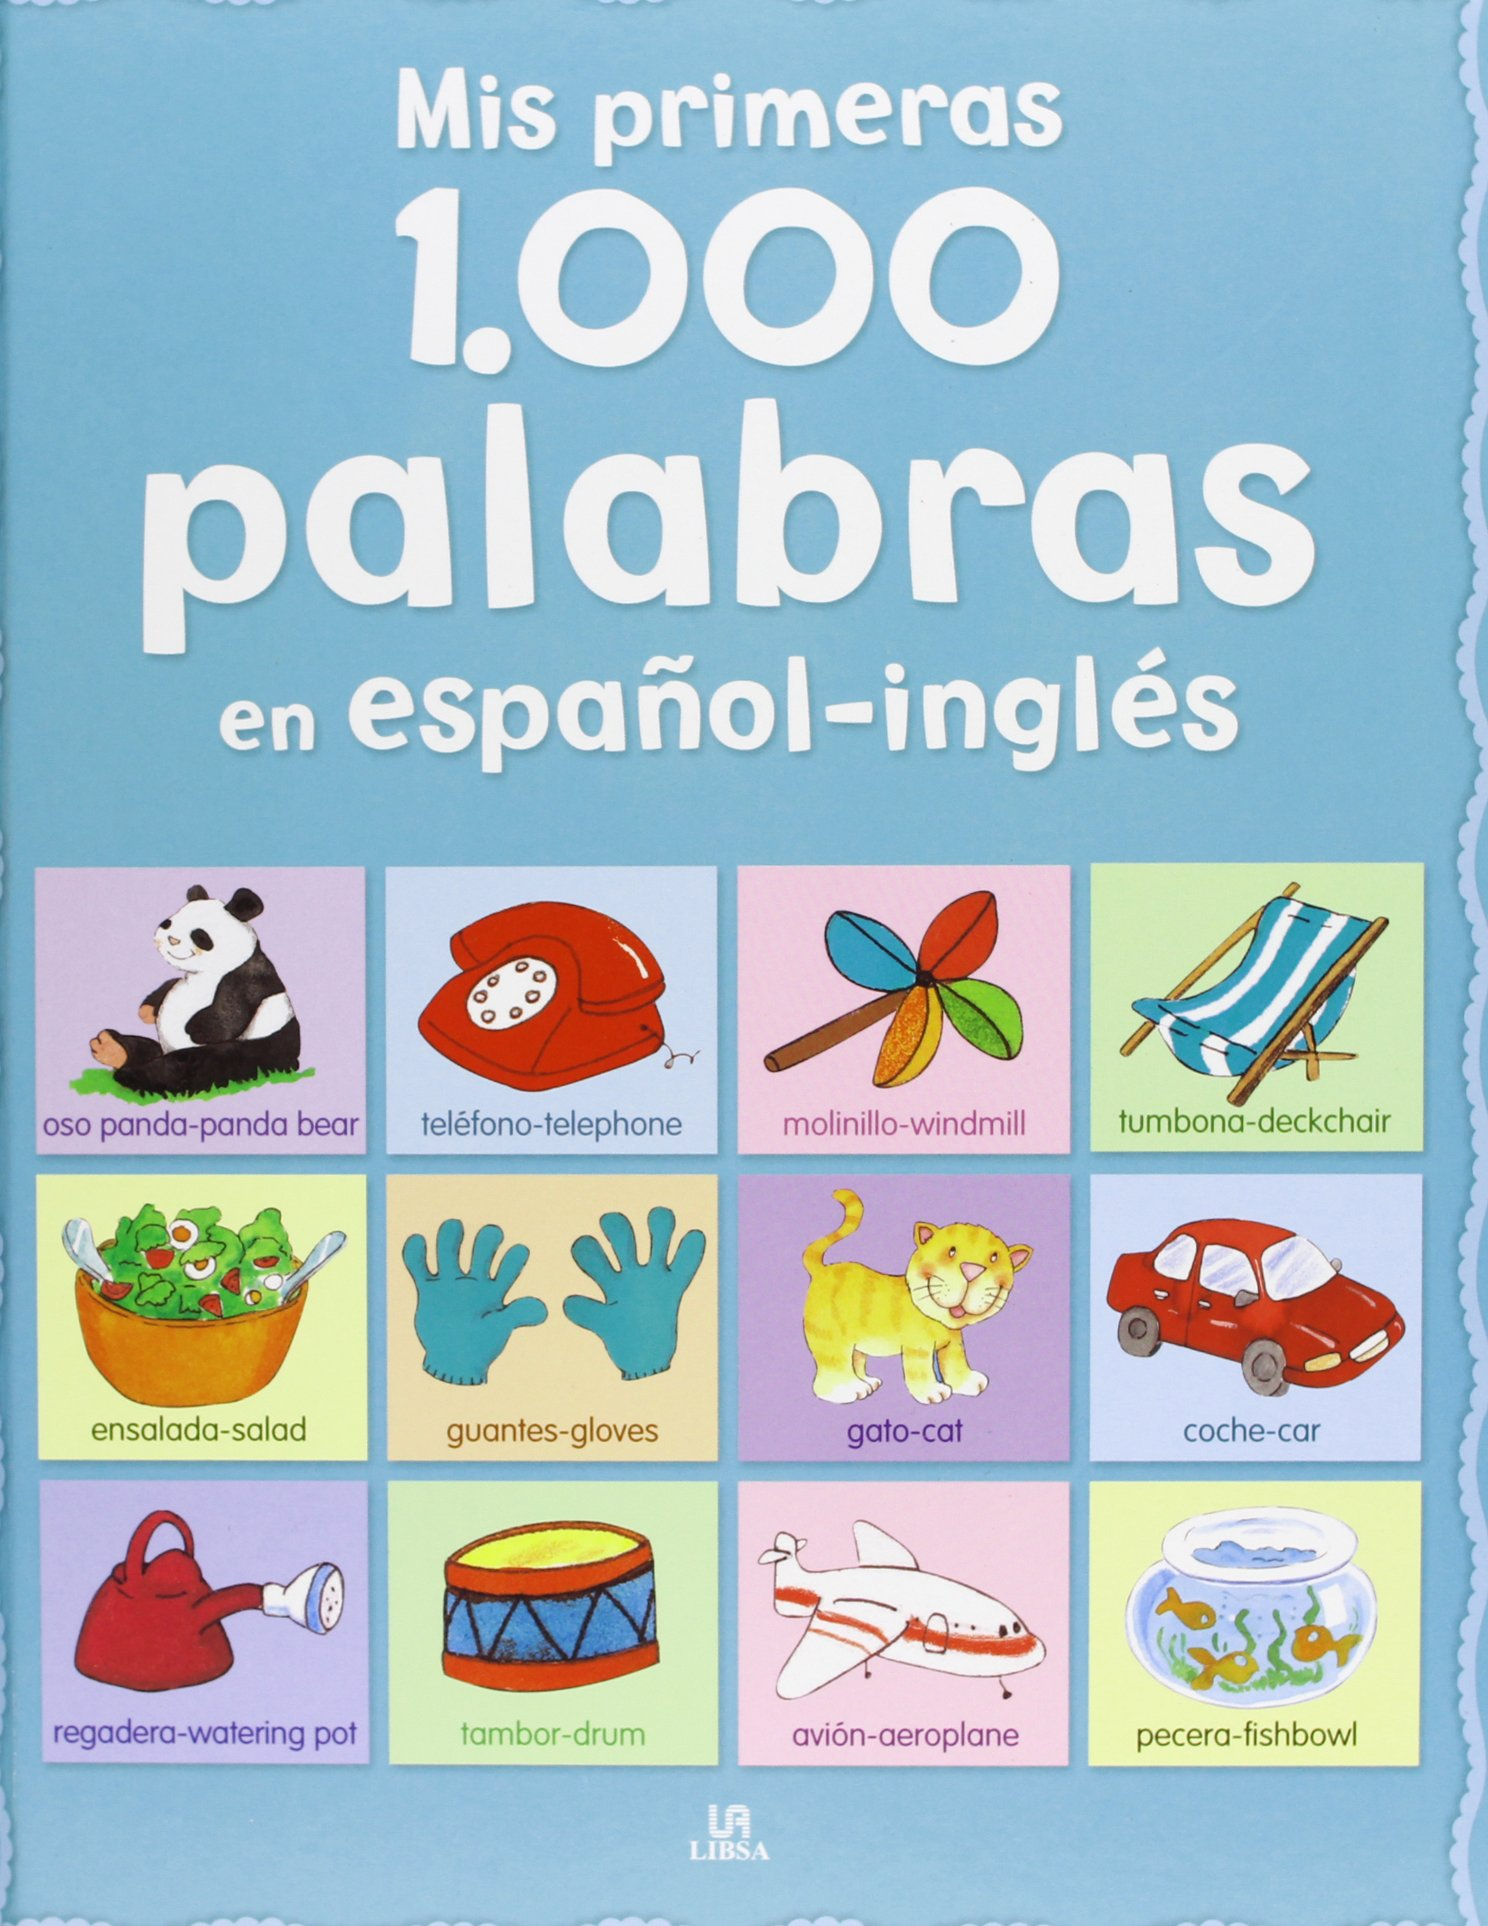 Mis primeras 1.000 palabras en español-inglés / My first 1000 words in Spanish-English (Spanish Edition) (Spanish) Hardcover – May 30, 2013